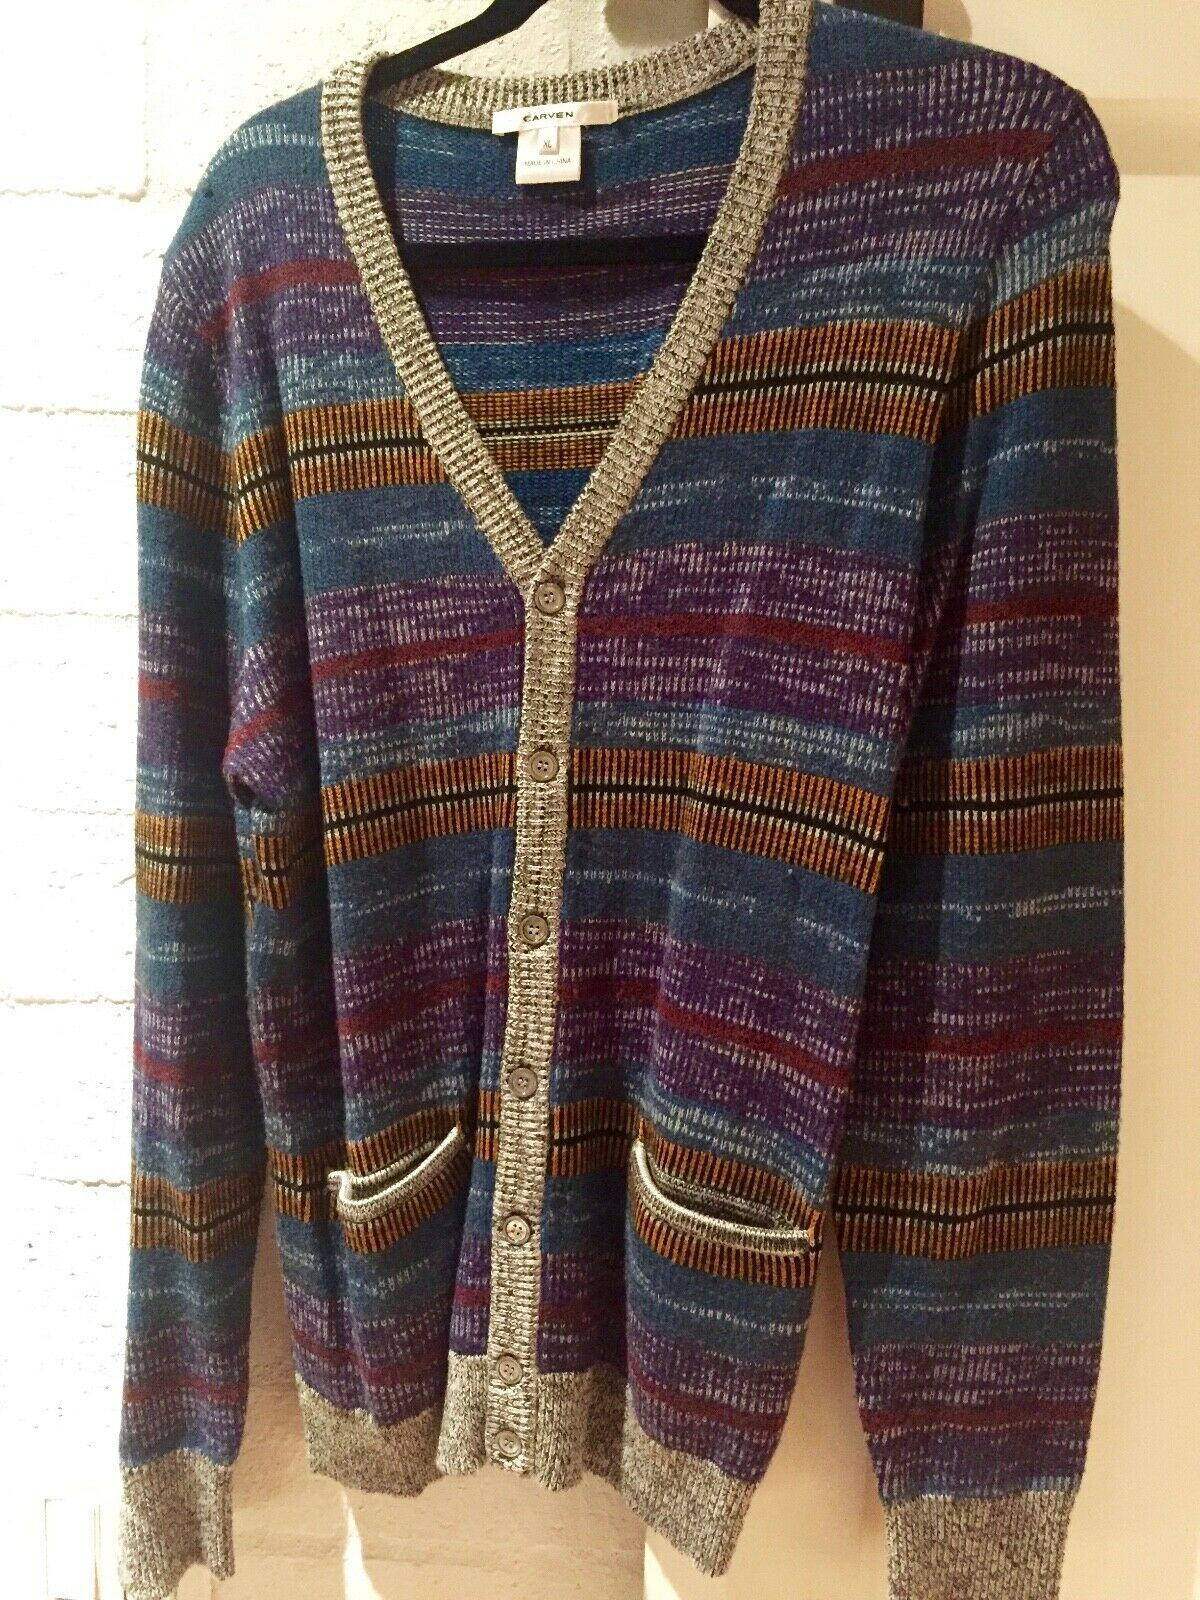 Carven 100% Wool Multi colord Cardigan Sweater XL